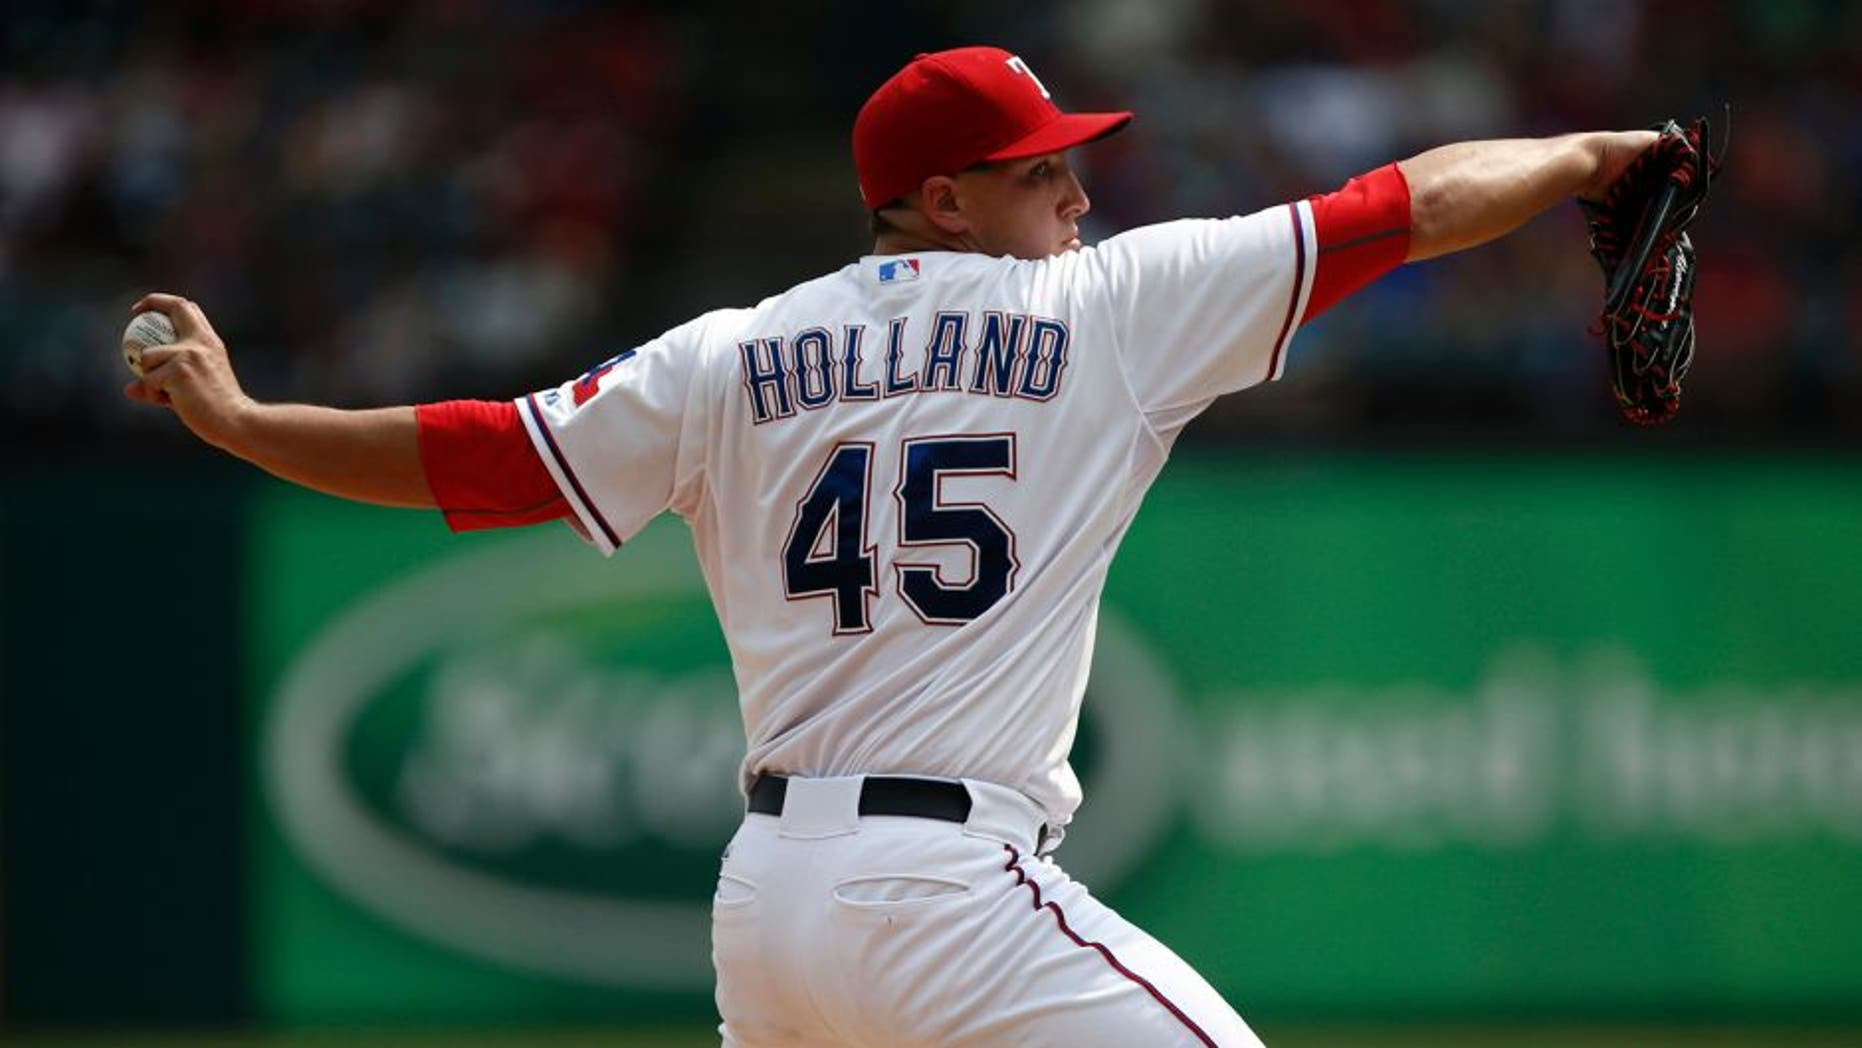 Aug 30, 2015; Arlington, TX, USA; Texas Rangers starting pitcher Derek Holland (45) delivers a pitch to the Baltimore Orioles during the fifth inning of a ballgame at Globe Life Park in Arlington. The Rangers won 6-0. Mandatory Credit: Jim Cowsert-USA TODAY Sports